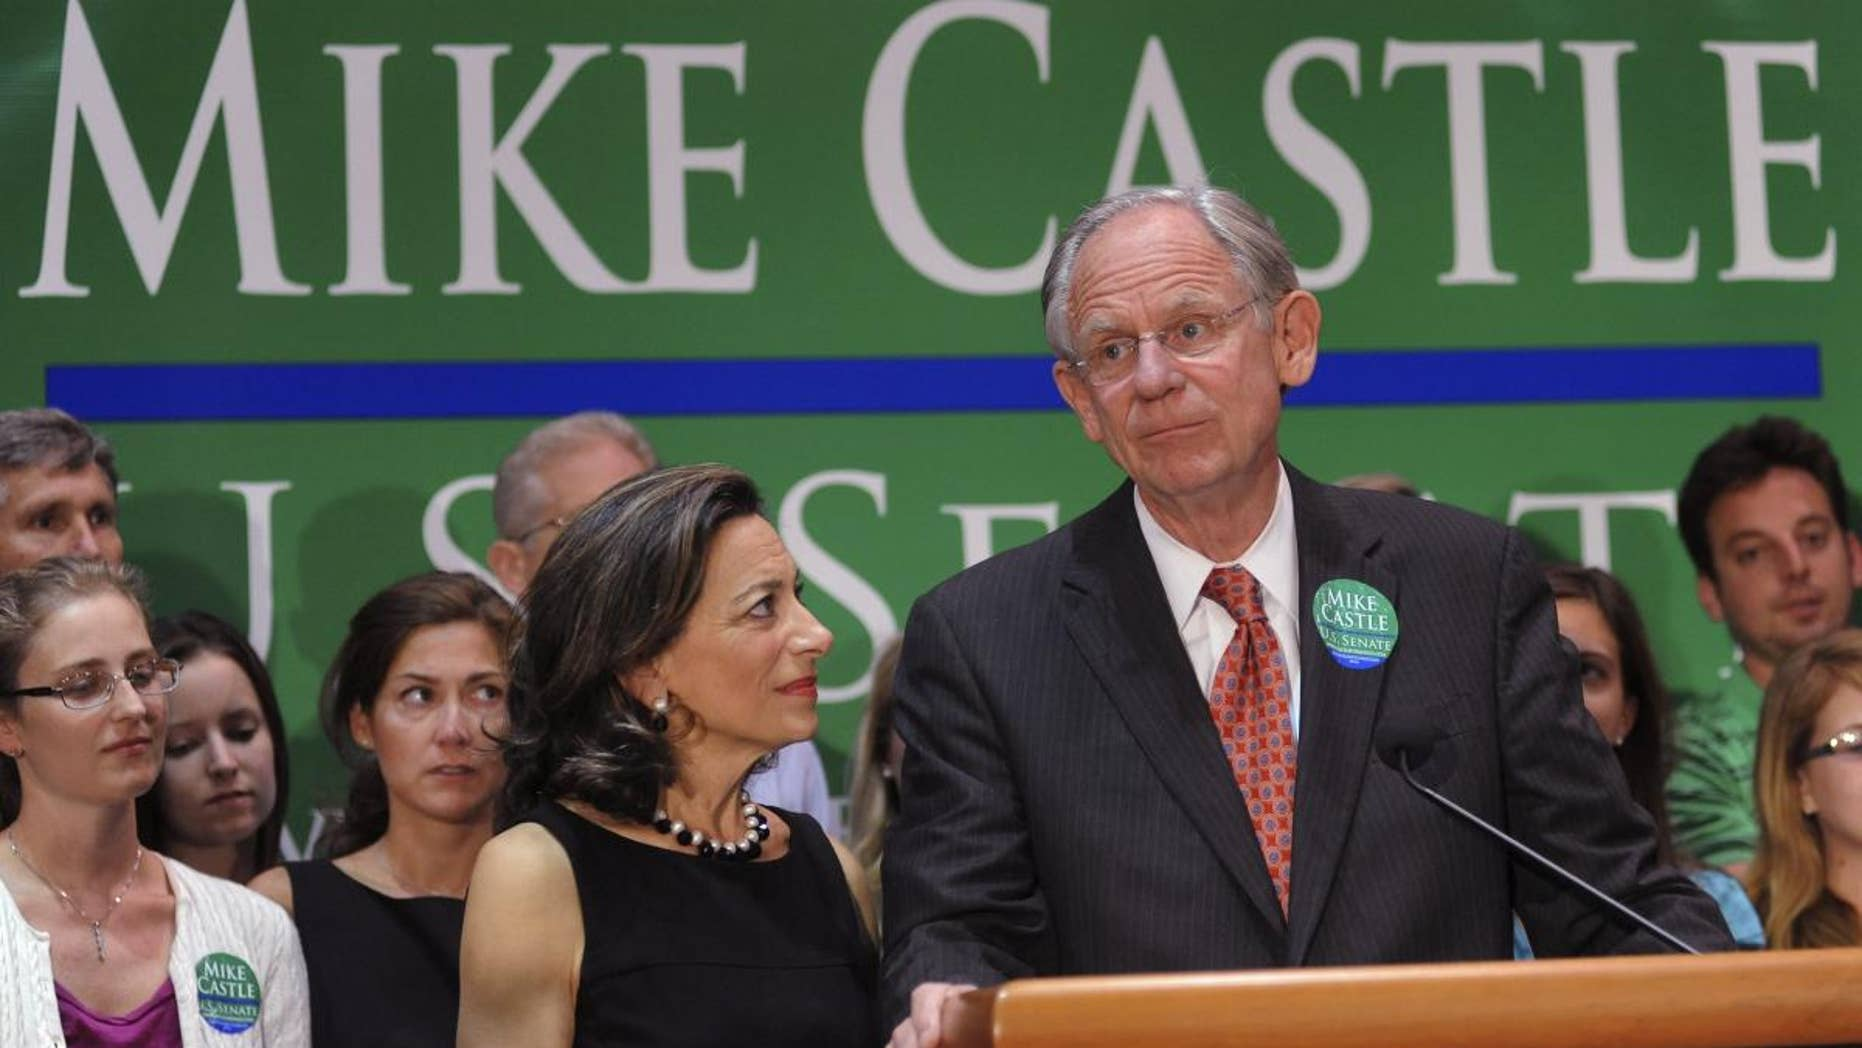 Rep. Mike Castle, R-Del., addresses supporters after his defeat on primary election night in Wilmington, Del., on Sept 14, 2010. (AP Photo)